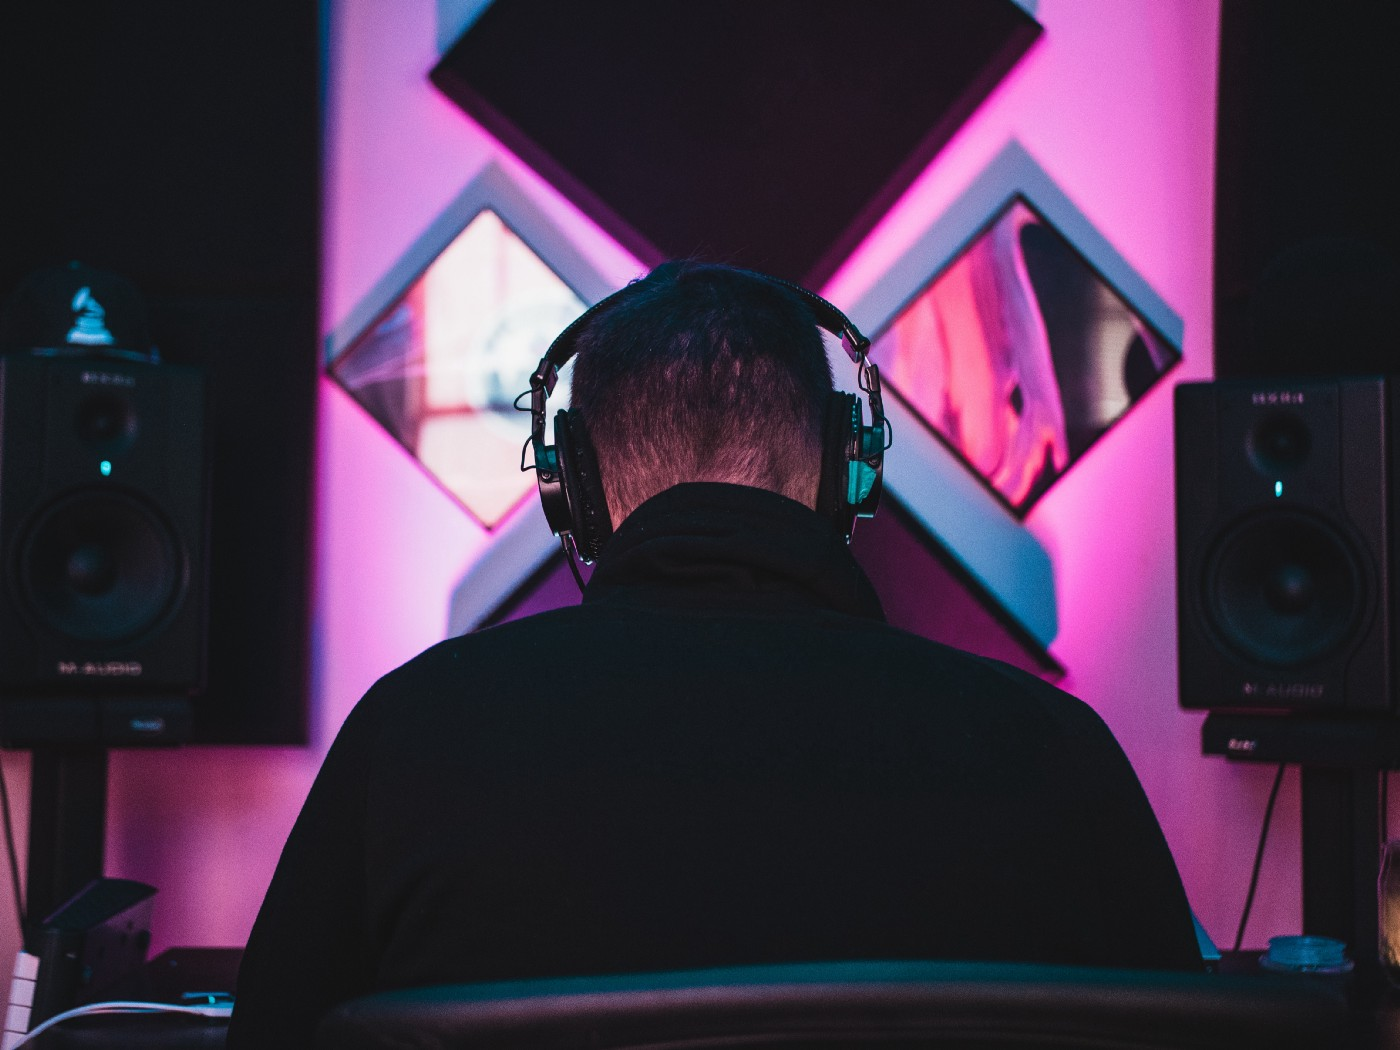 High contrast photo in blacks and neon pinks of the back of a person's head and shoulders. They are wearing headphones and large audio equipment is visible in the background.